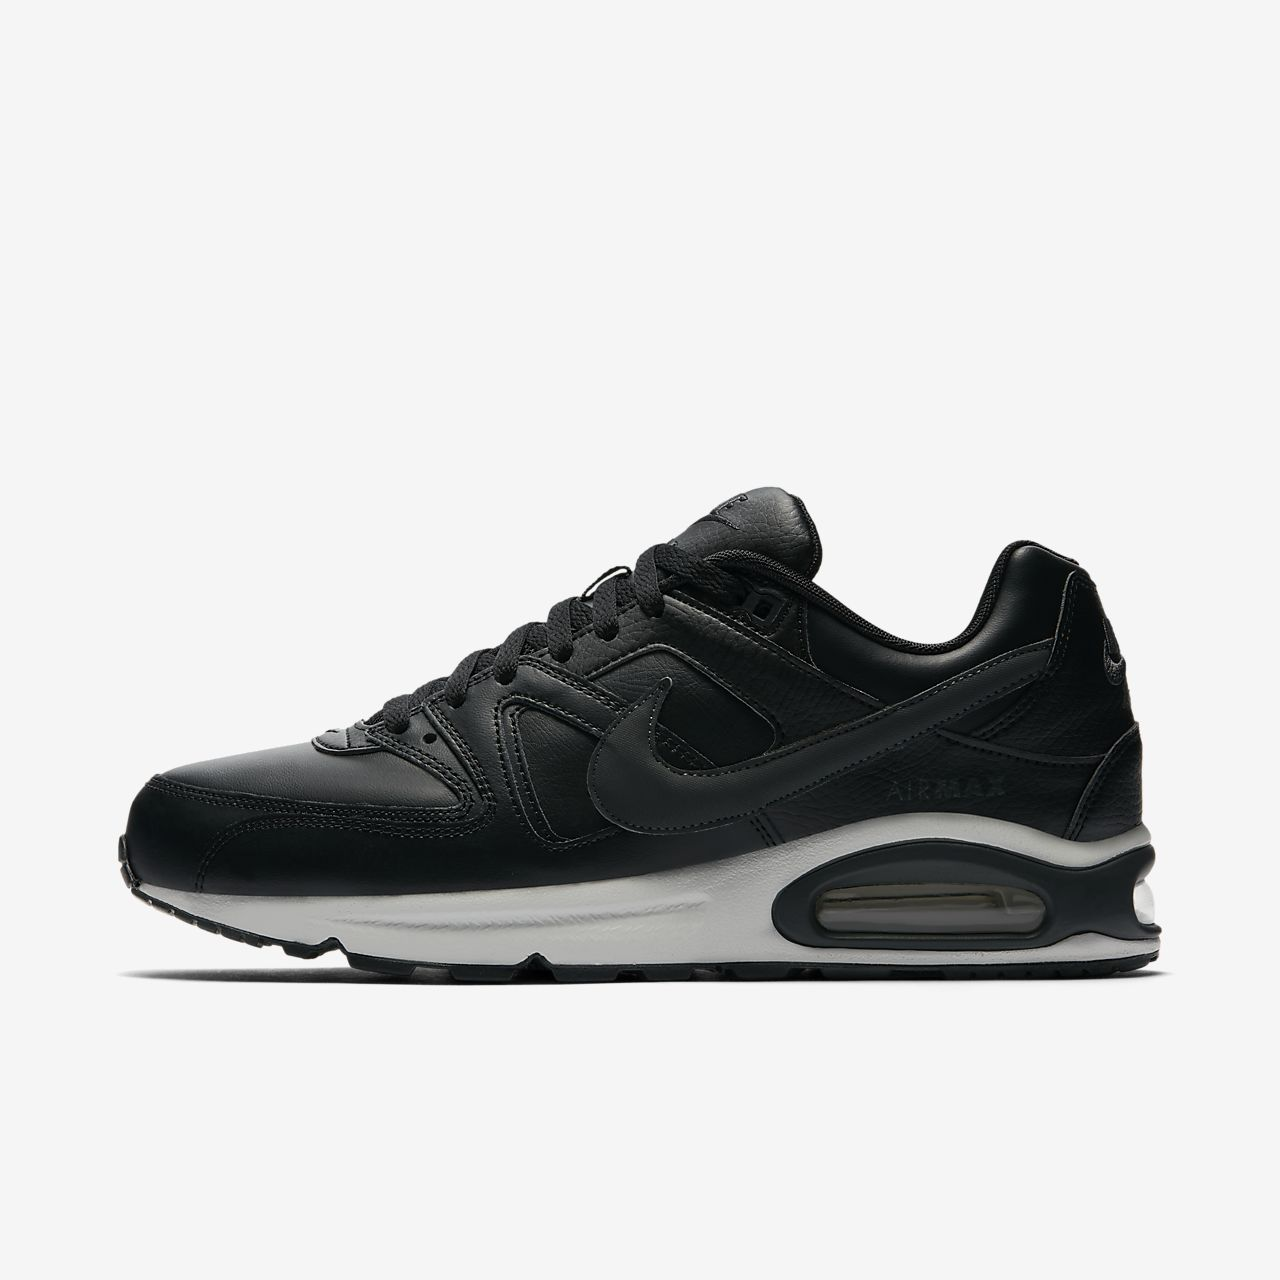 separation shoes ede47 2eb99 ... Nike Air Max Command Herrenschuh